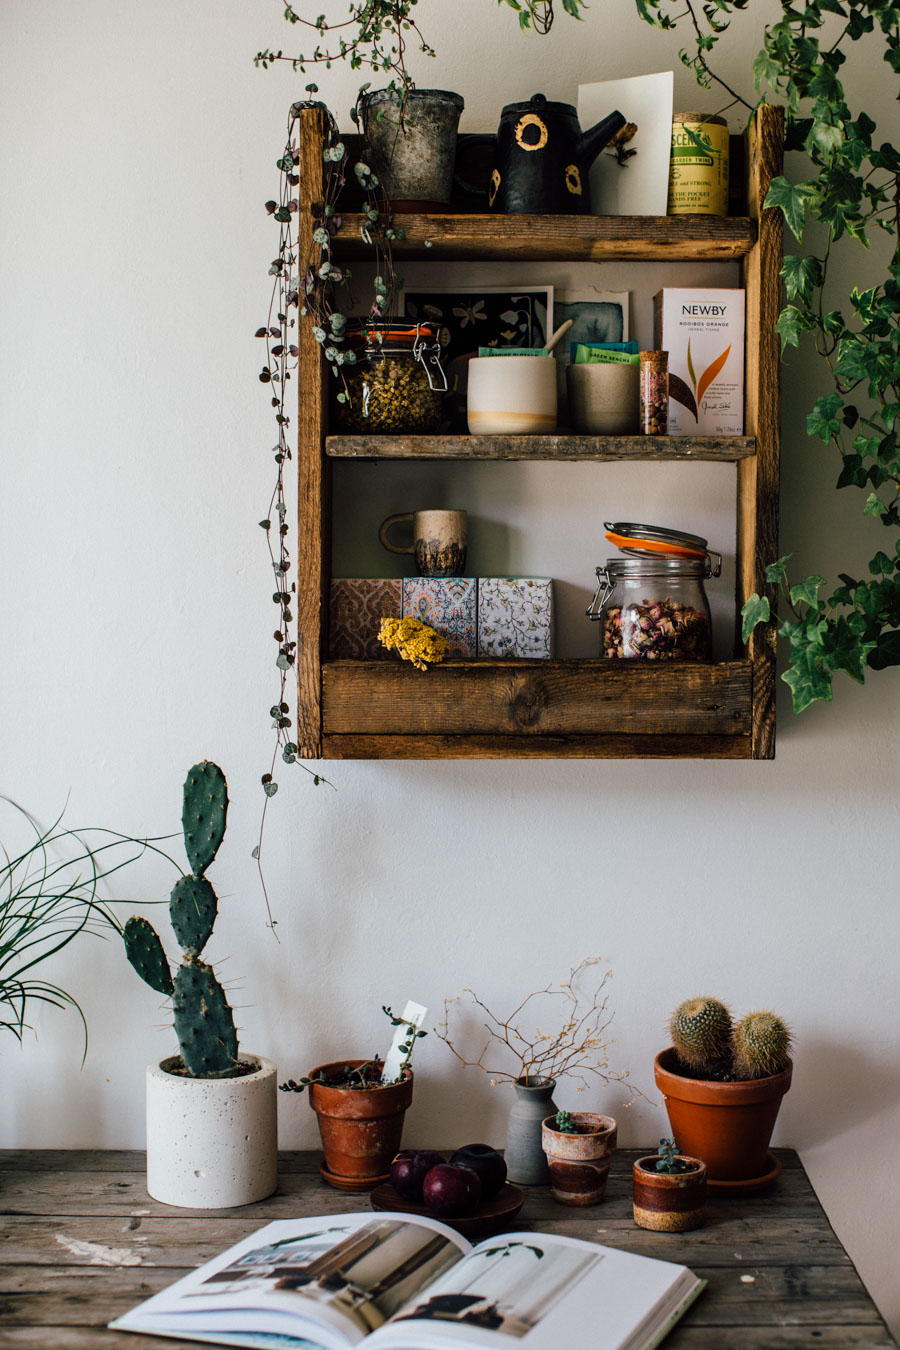 Rustic kitchen shelf